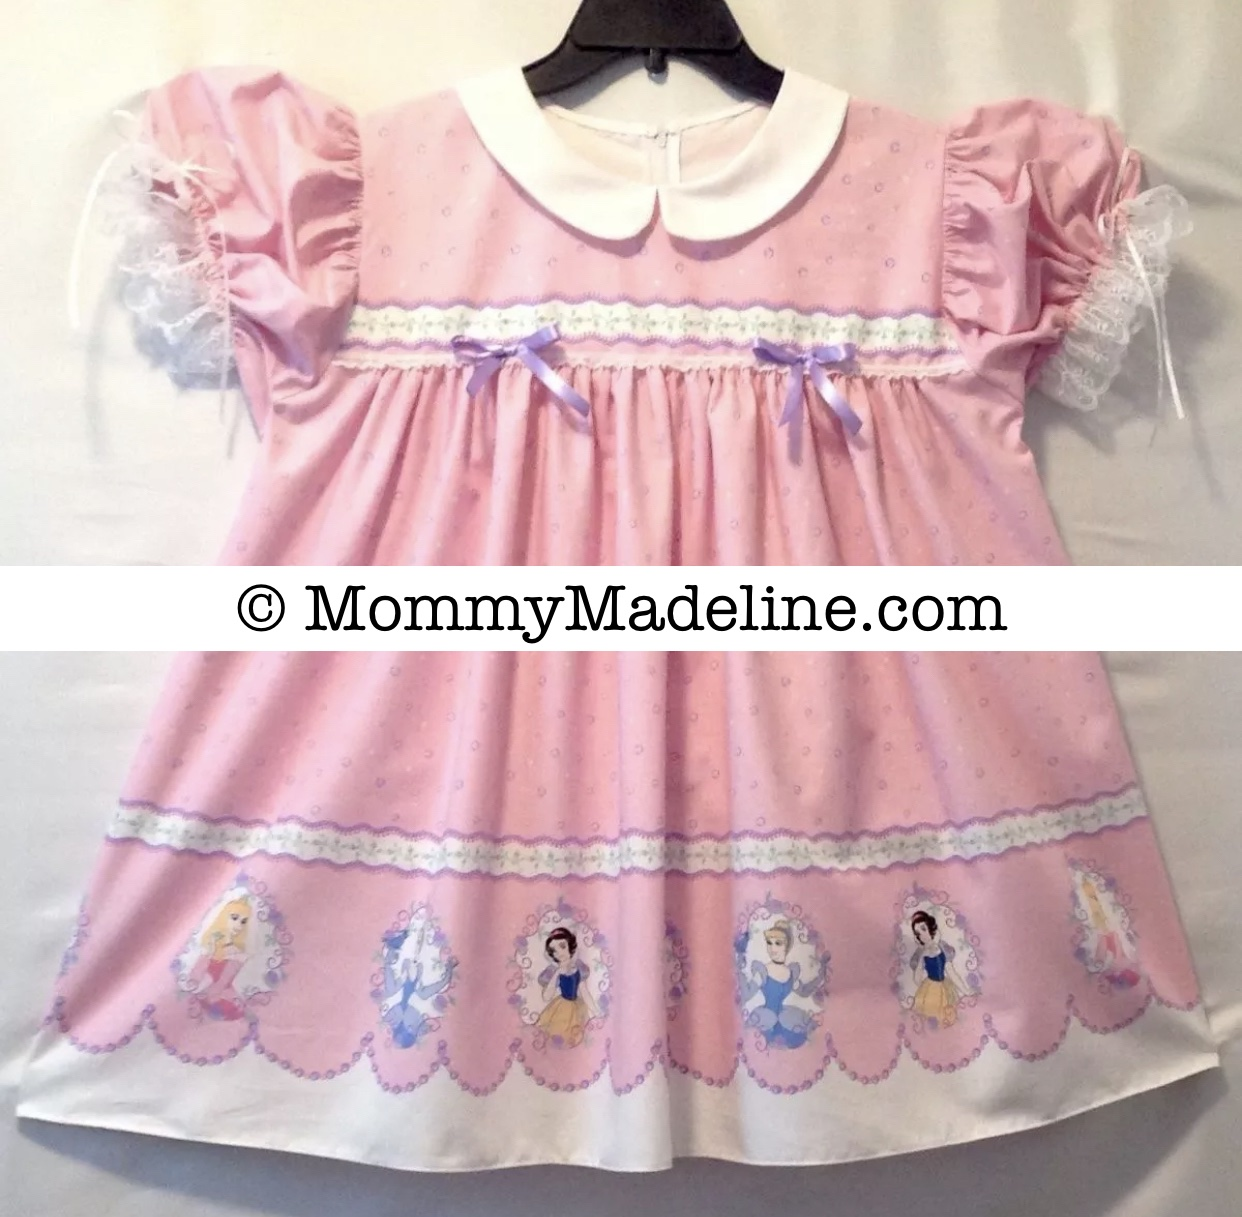 A pretty pink sissy baby dress